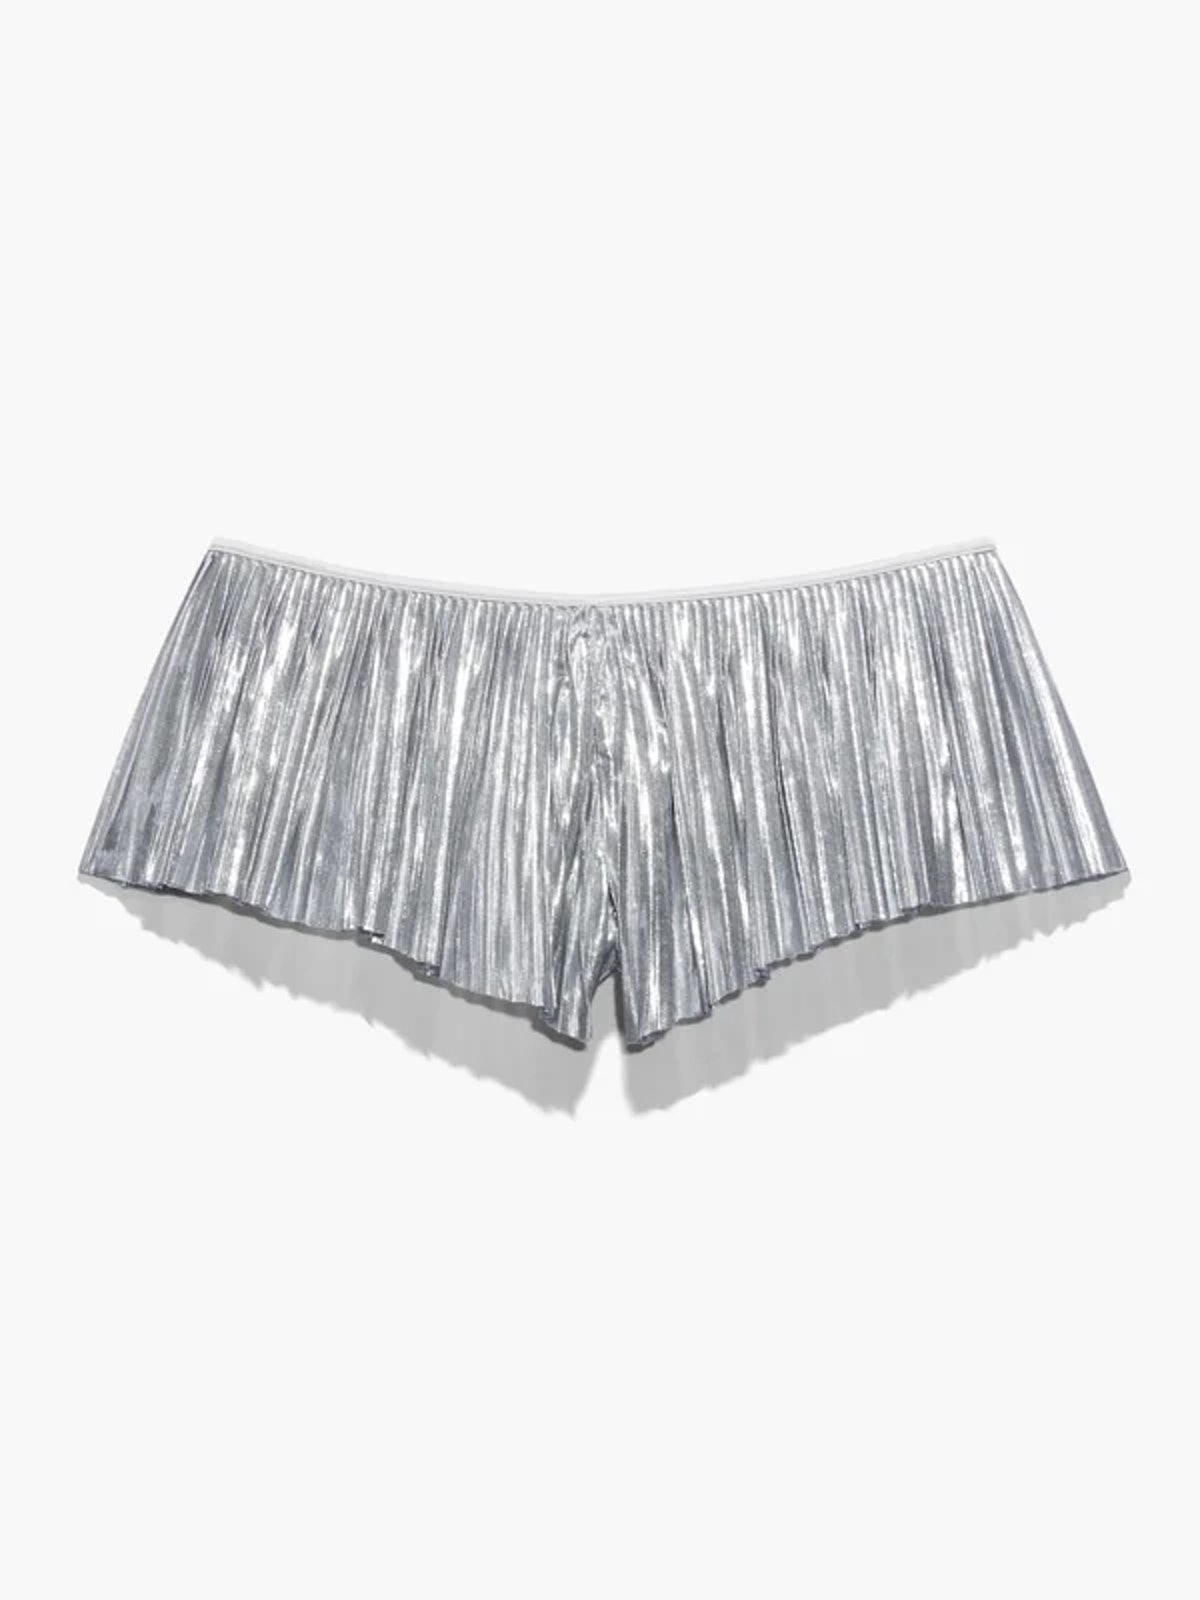 Pleated Lamé Short from Savage X Fenty.